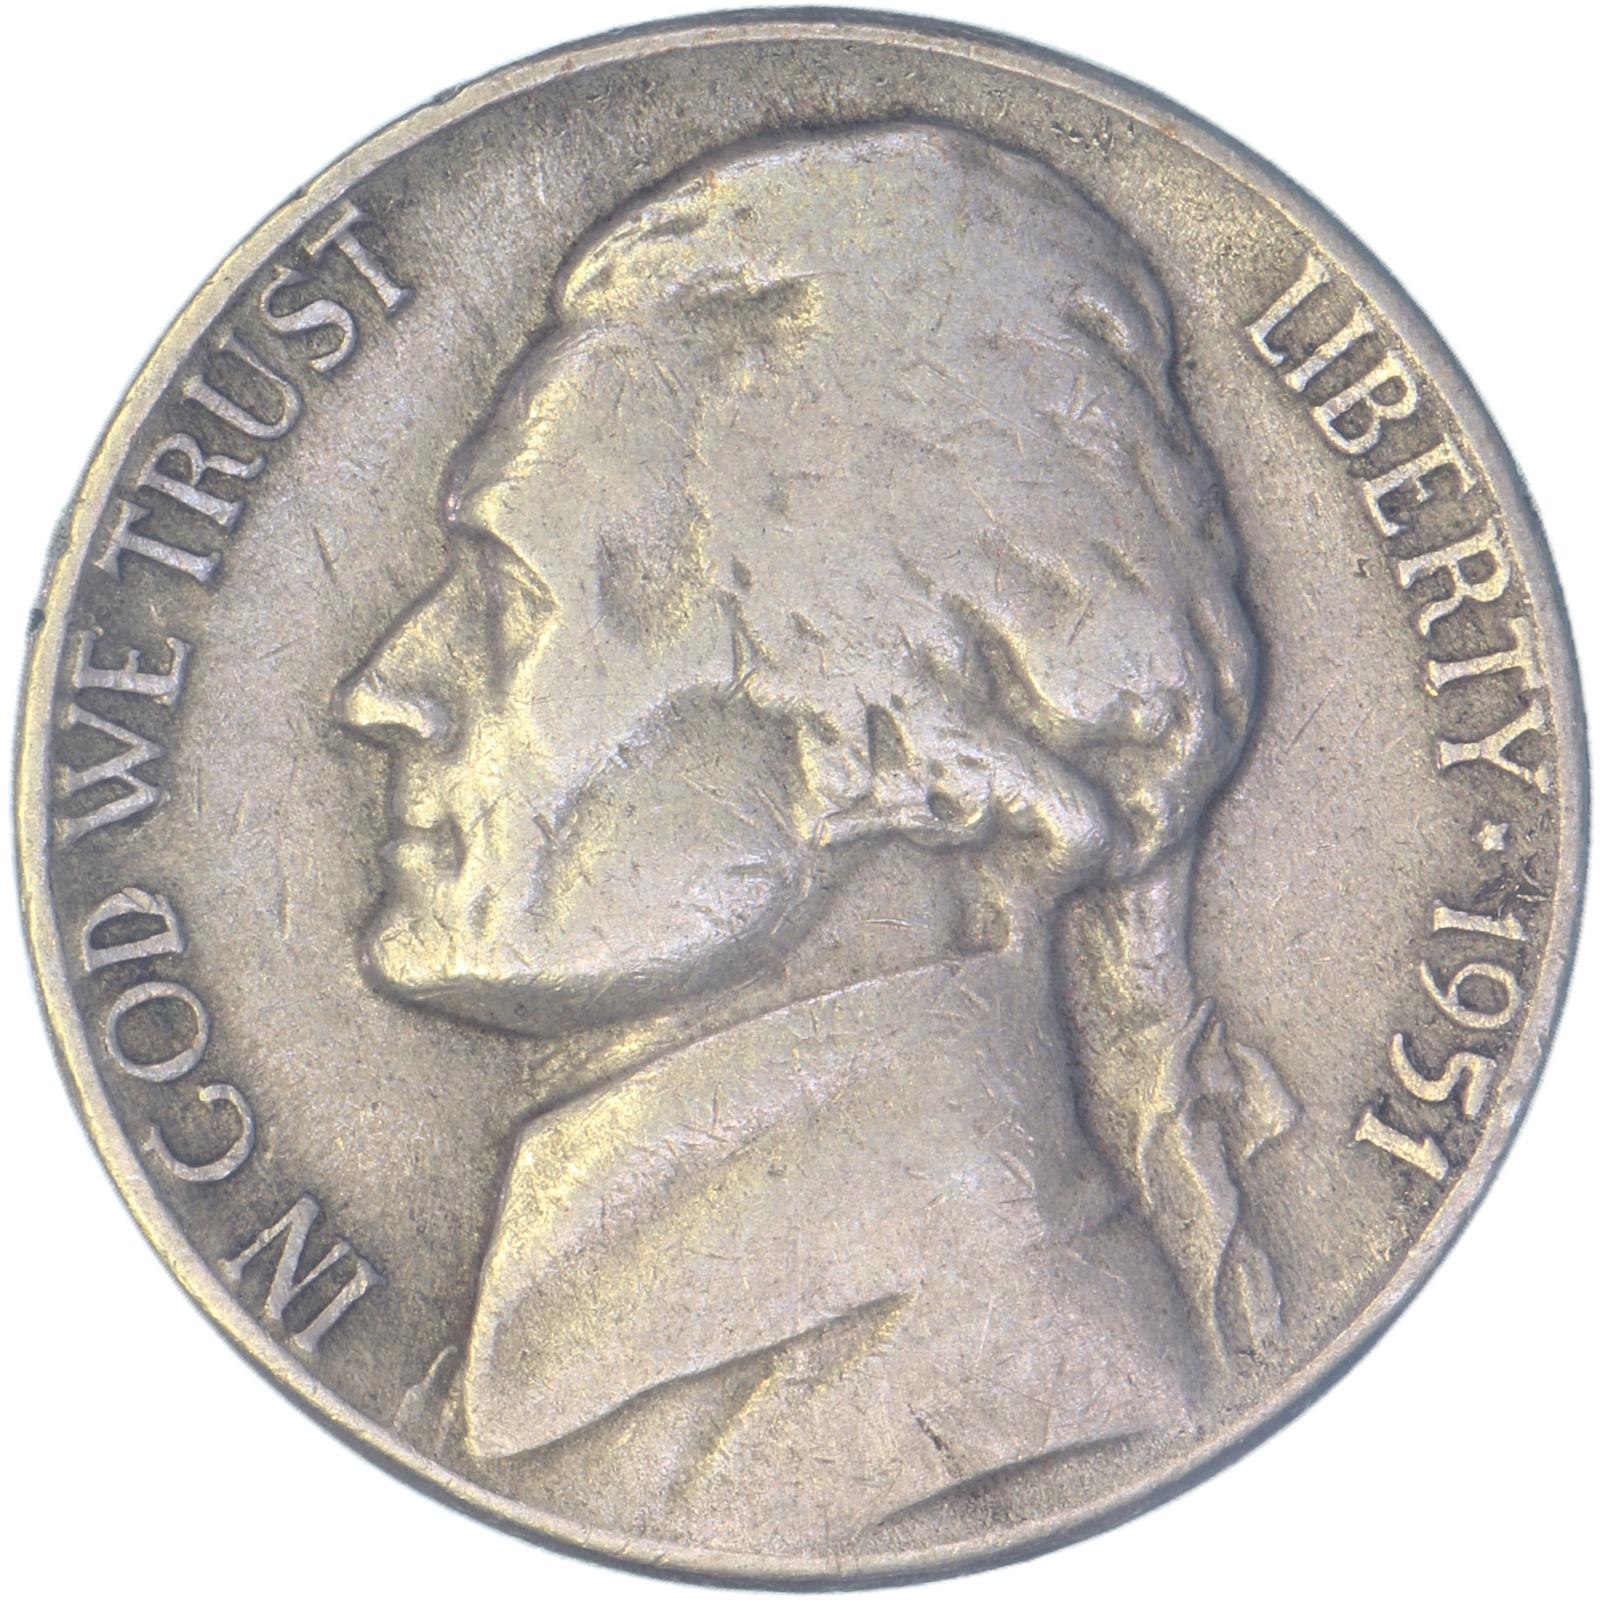 Satisfaction Guaranteed! 1951-D Circulated Jefferson Nickel No Shipping